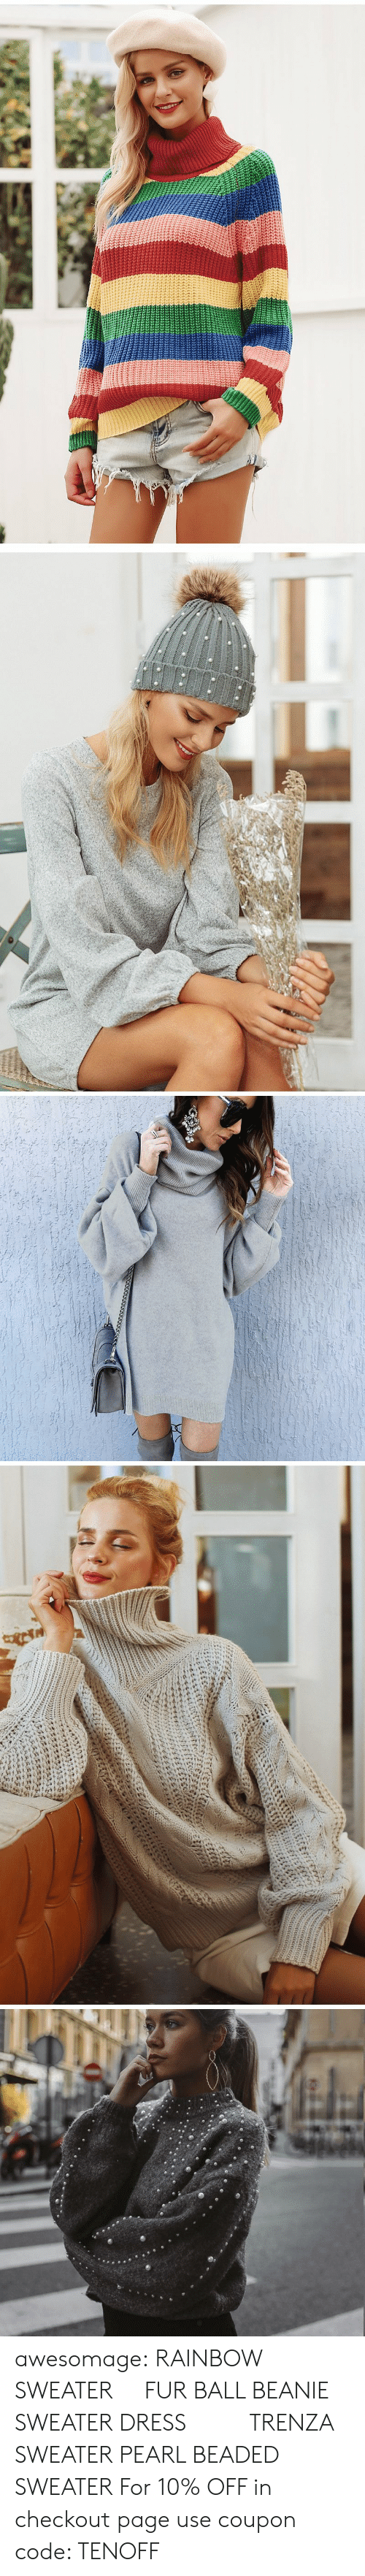 beanie: awesomage:  RAINBOW SWEATER   FUR BALL BEANIE  SWEATER DRESS     TRENZA SWEATER  PEARL BEADED SWEATER  For 10% OFF in checkout page use coupon code: TENOFF